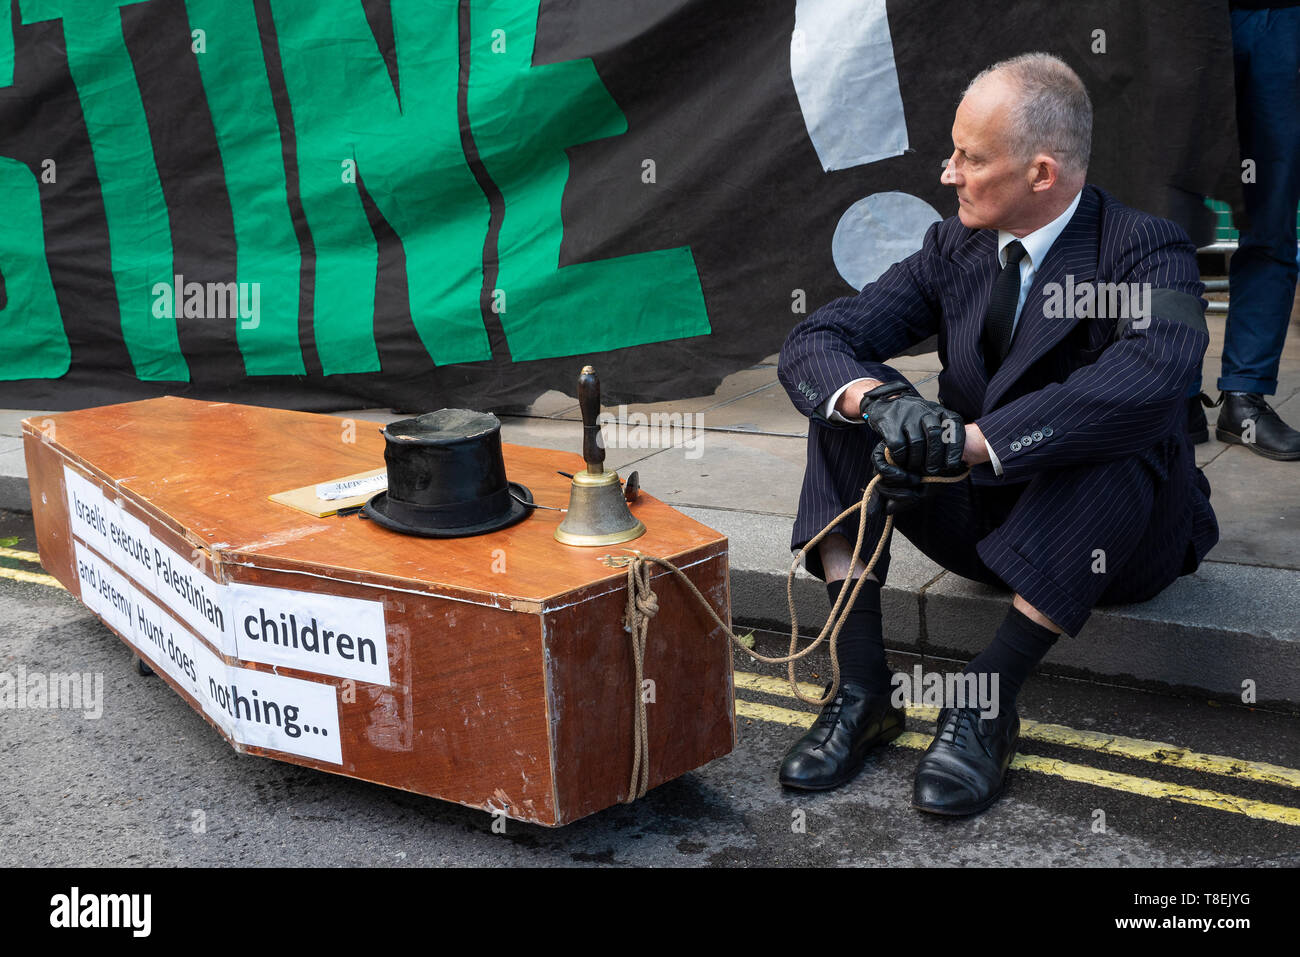 London, UK. May 11th 2019. National Demonstration for Palestine. Thousands of activists marched from Portland Place to Whitehall. Organised by the Palestine Solidarity Campaign, Stop the War Coalition, Palestinian Forum in Britain, Friends of Al- Aqsa & Muslim Association of Britain. Pictured, Palestine activist sitting in Whitehall with coffin, with Israelis execute Palestinian children and Jeremy Hunt does nothing written on coffin side. Credit: Stephen Bell/Alamy Stock Photo Stock Photo